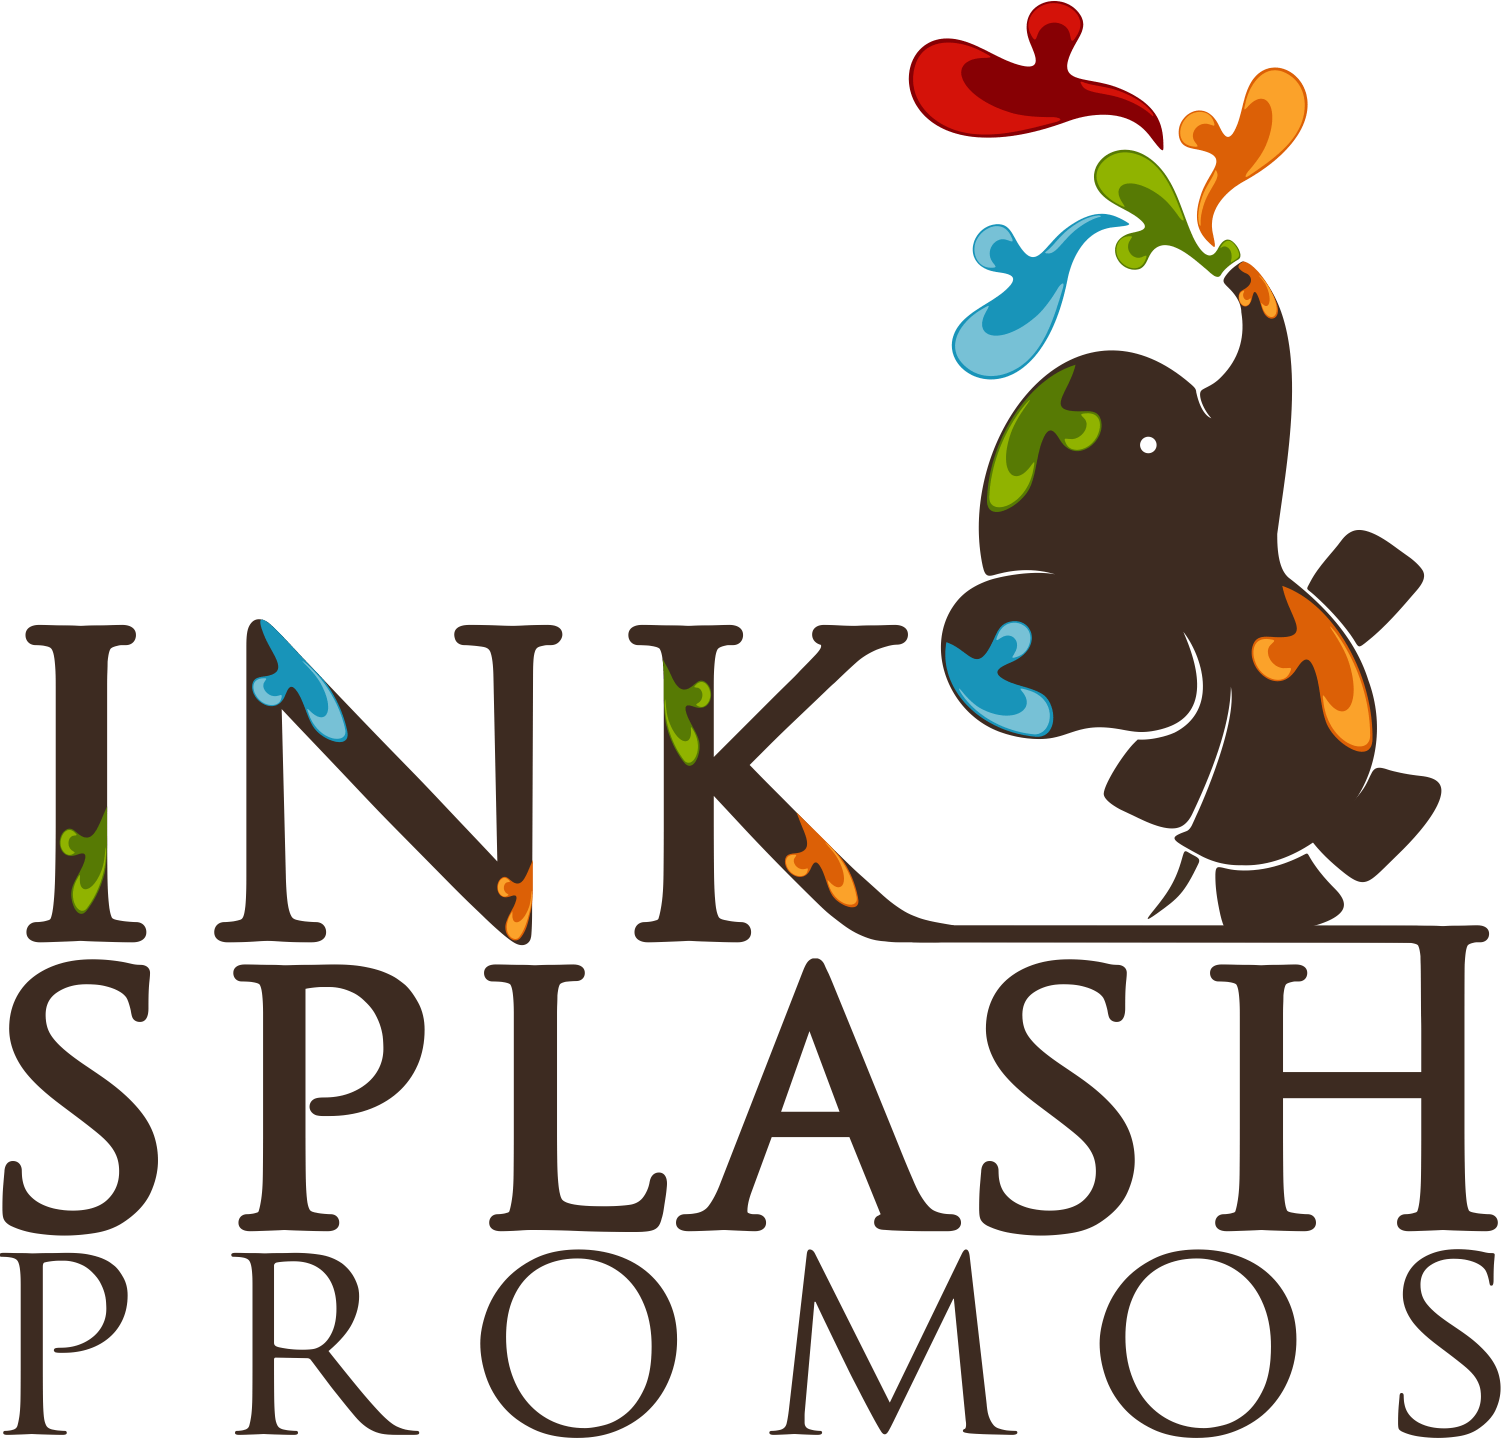 Ink Splash Promos, LLC logo